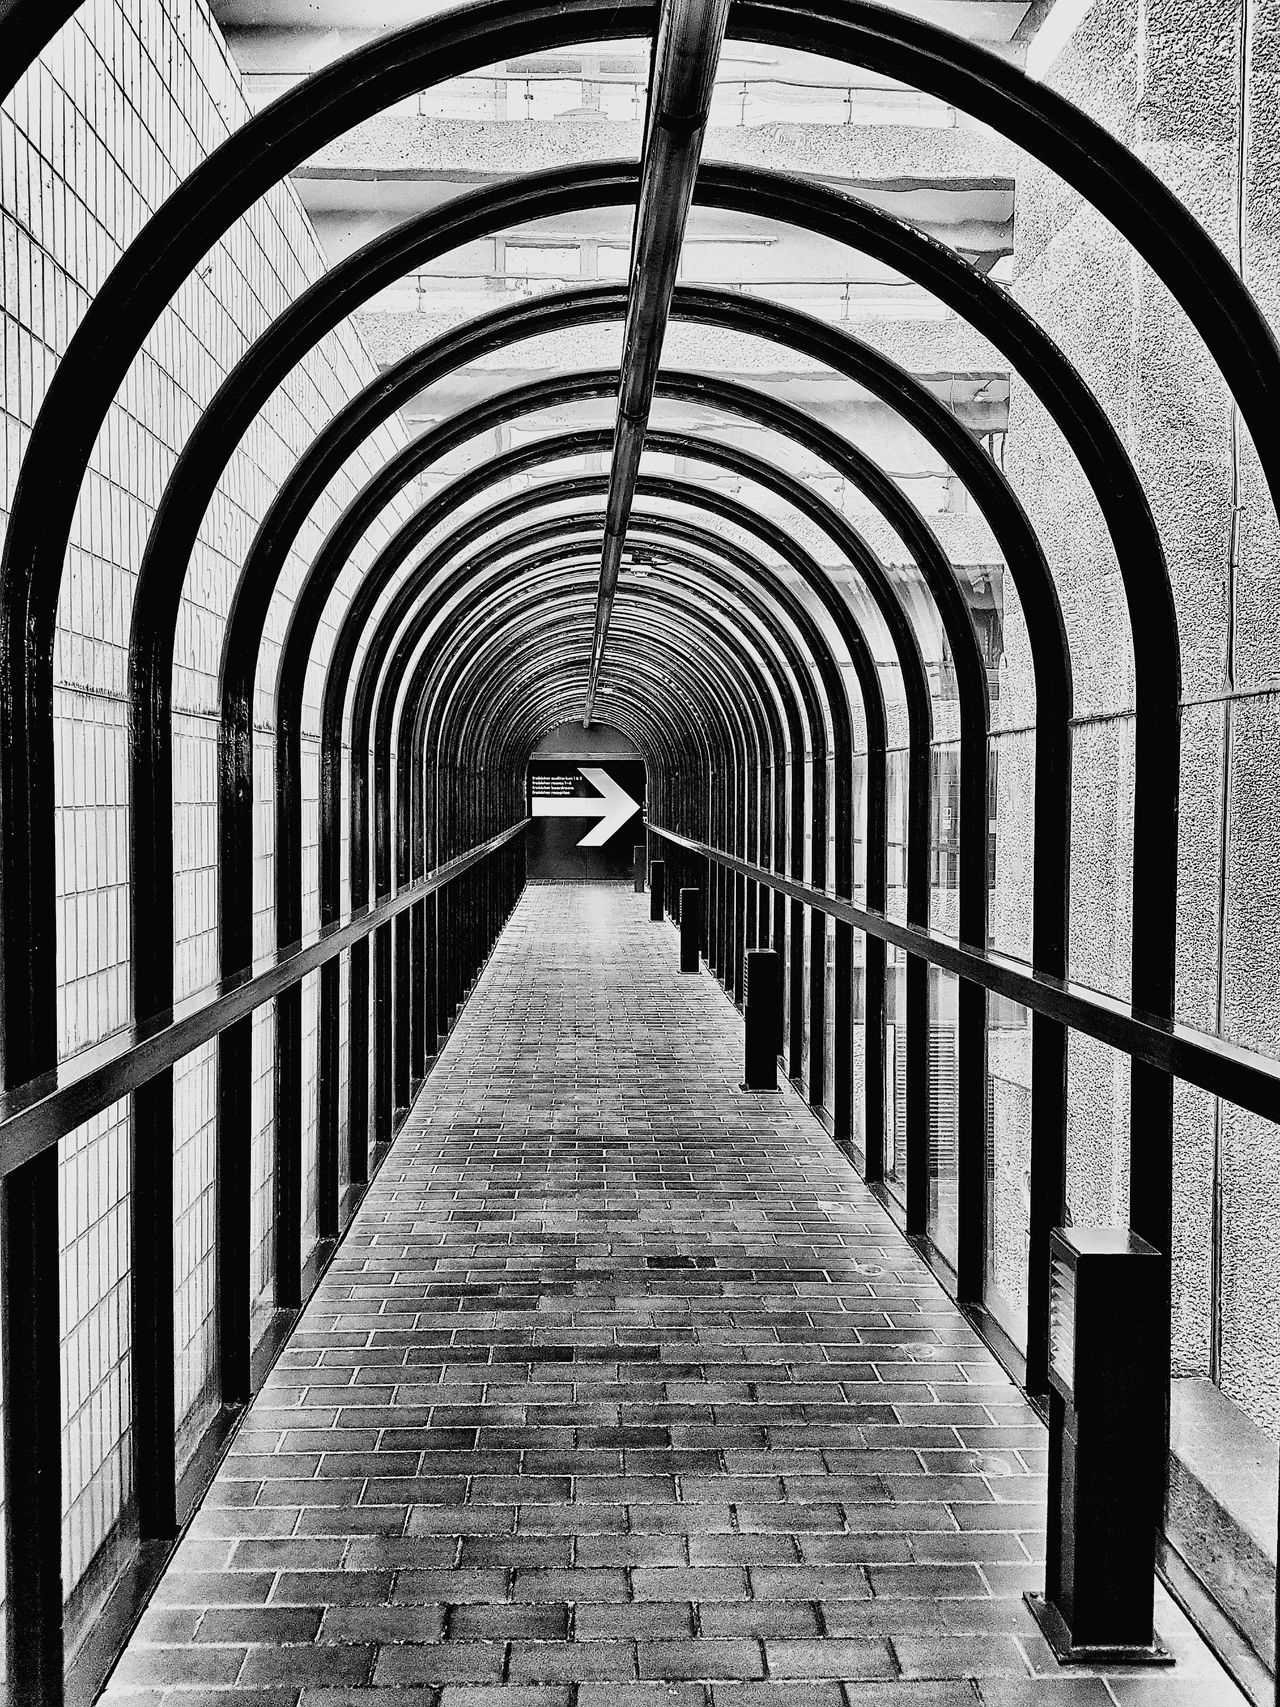 To The Right Arch The Way Forward Indoors  No People Right Arrow Sign Arrow Going Right Tunnel Arches Perspective Black And White Monochrome Keep Right The Secret Spaces ミーノー!! The Architect - 2017 EyeEm Awards